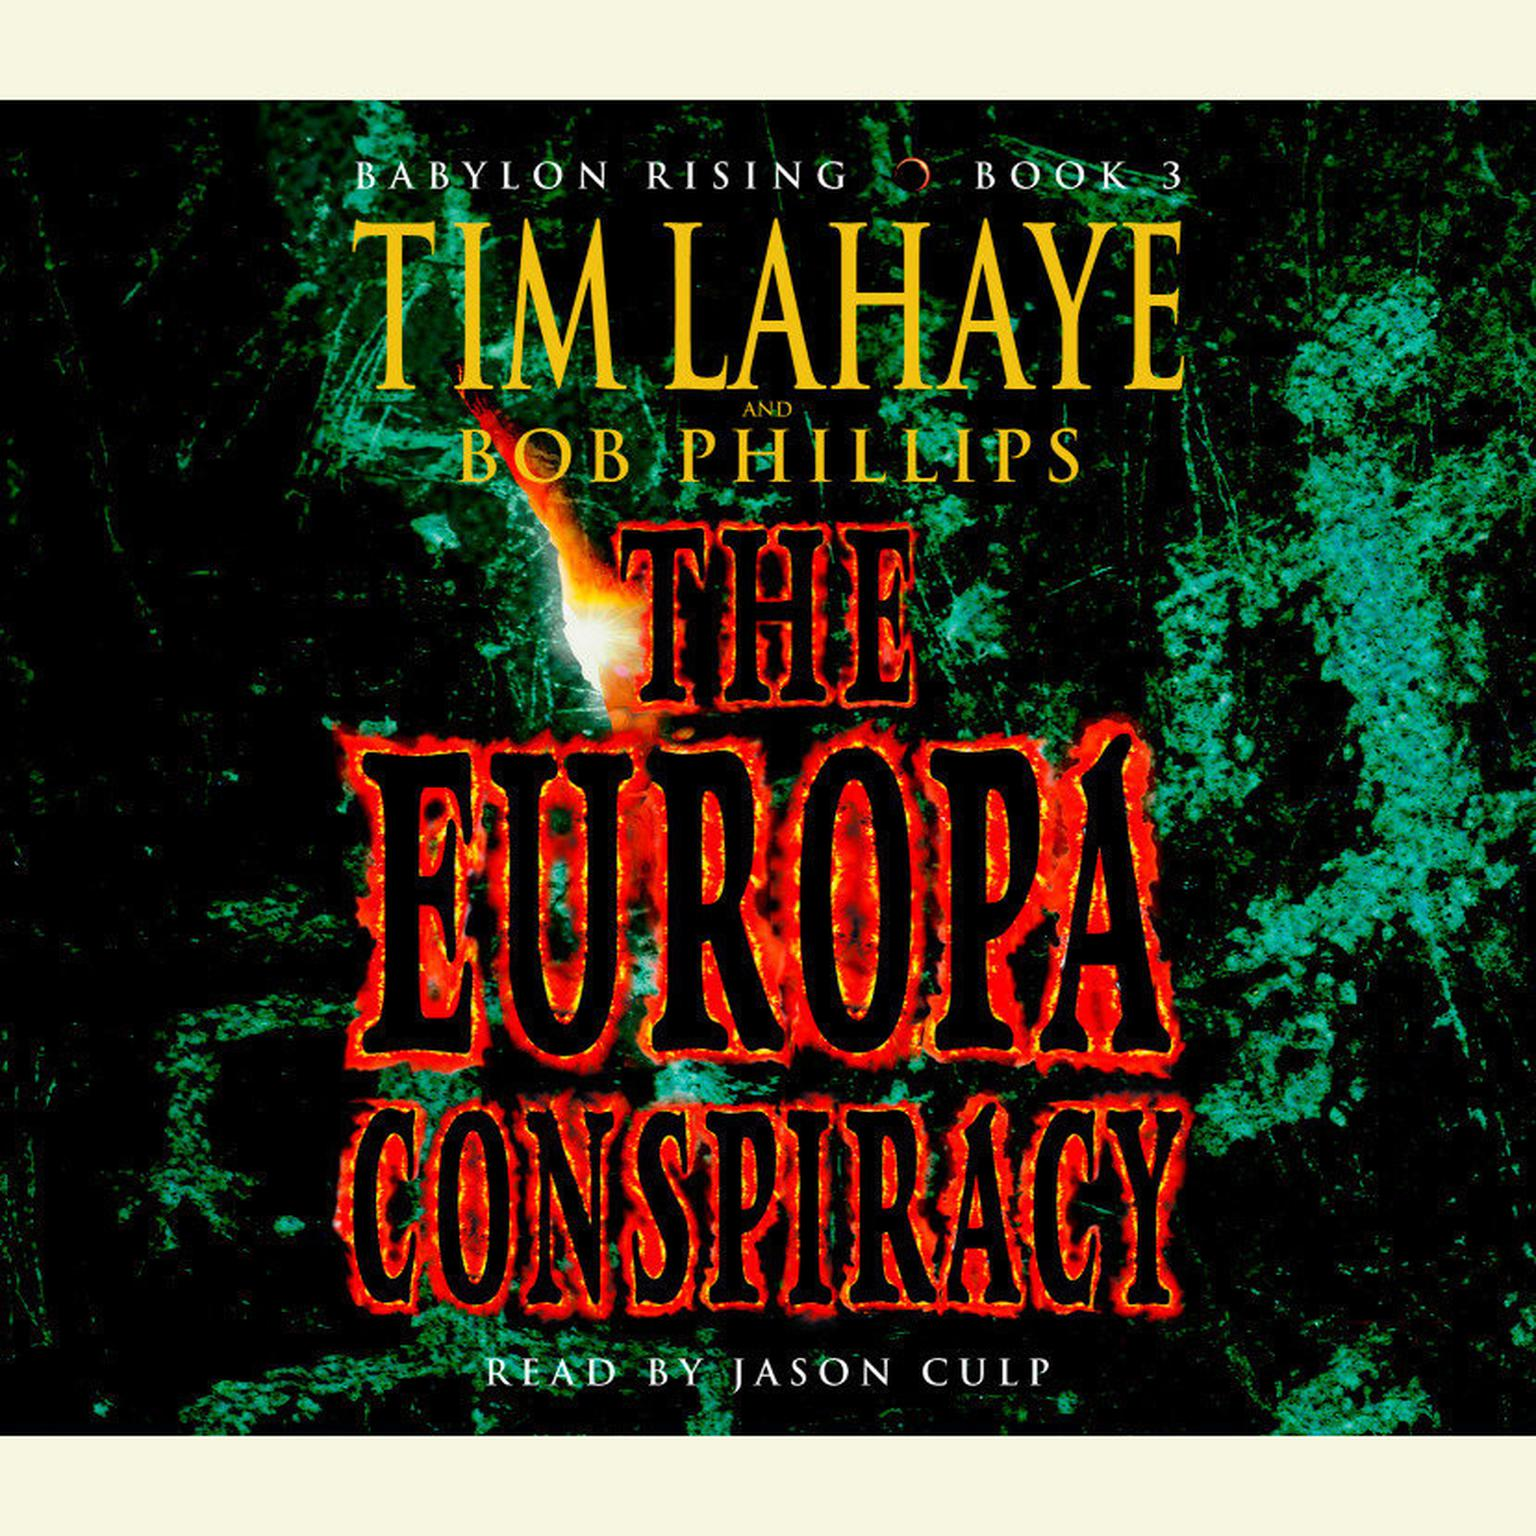 Printable Babylon Rising Book 3: The Europa Conspiracy Audiobook Cover Art